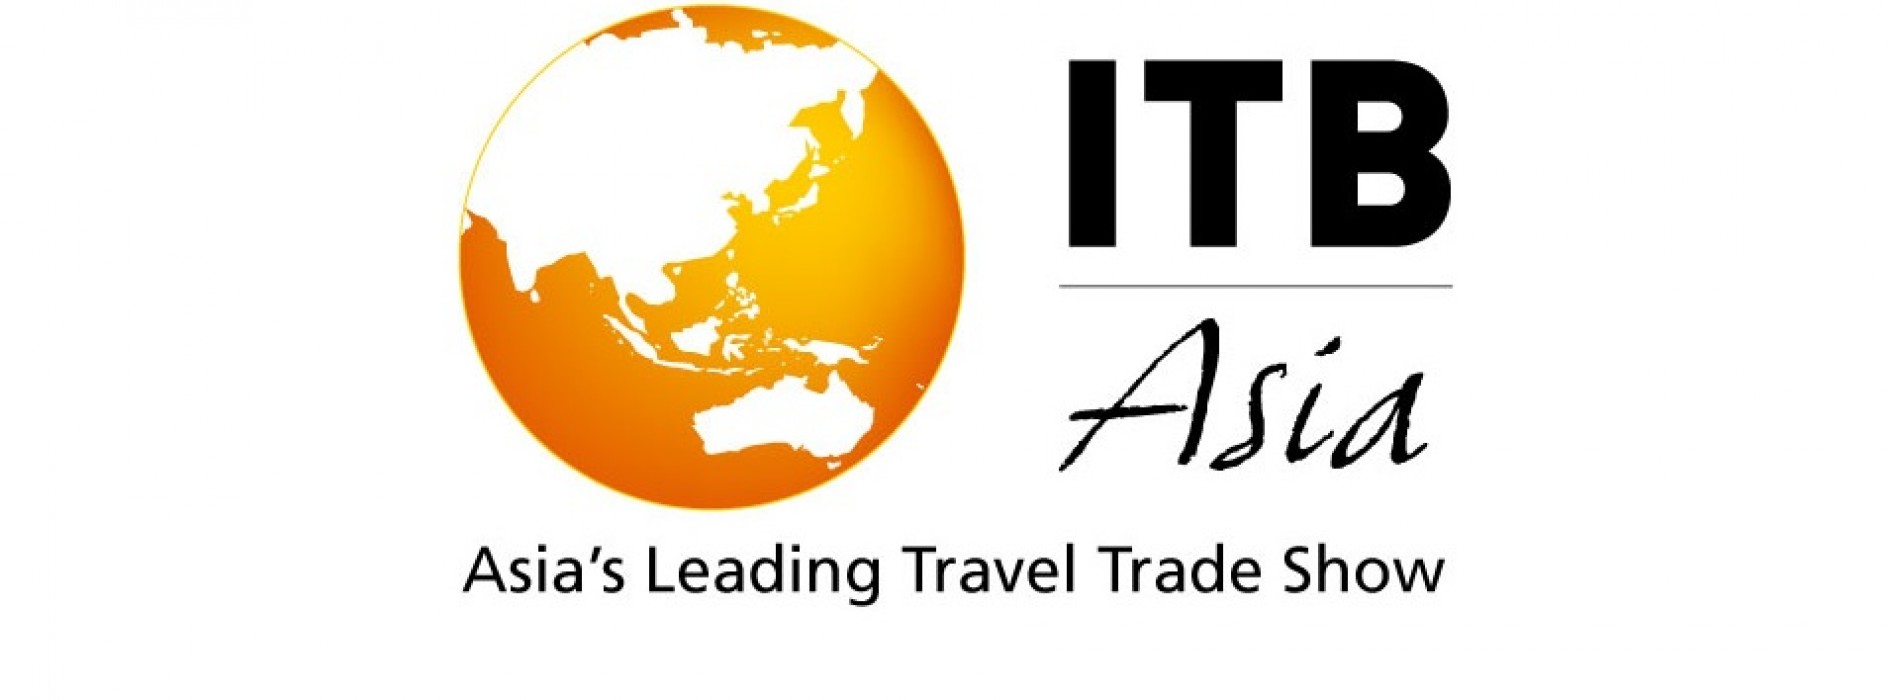 ITB Asia sees record number of new exhibitors for its 11th show in Singapore